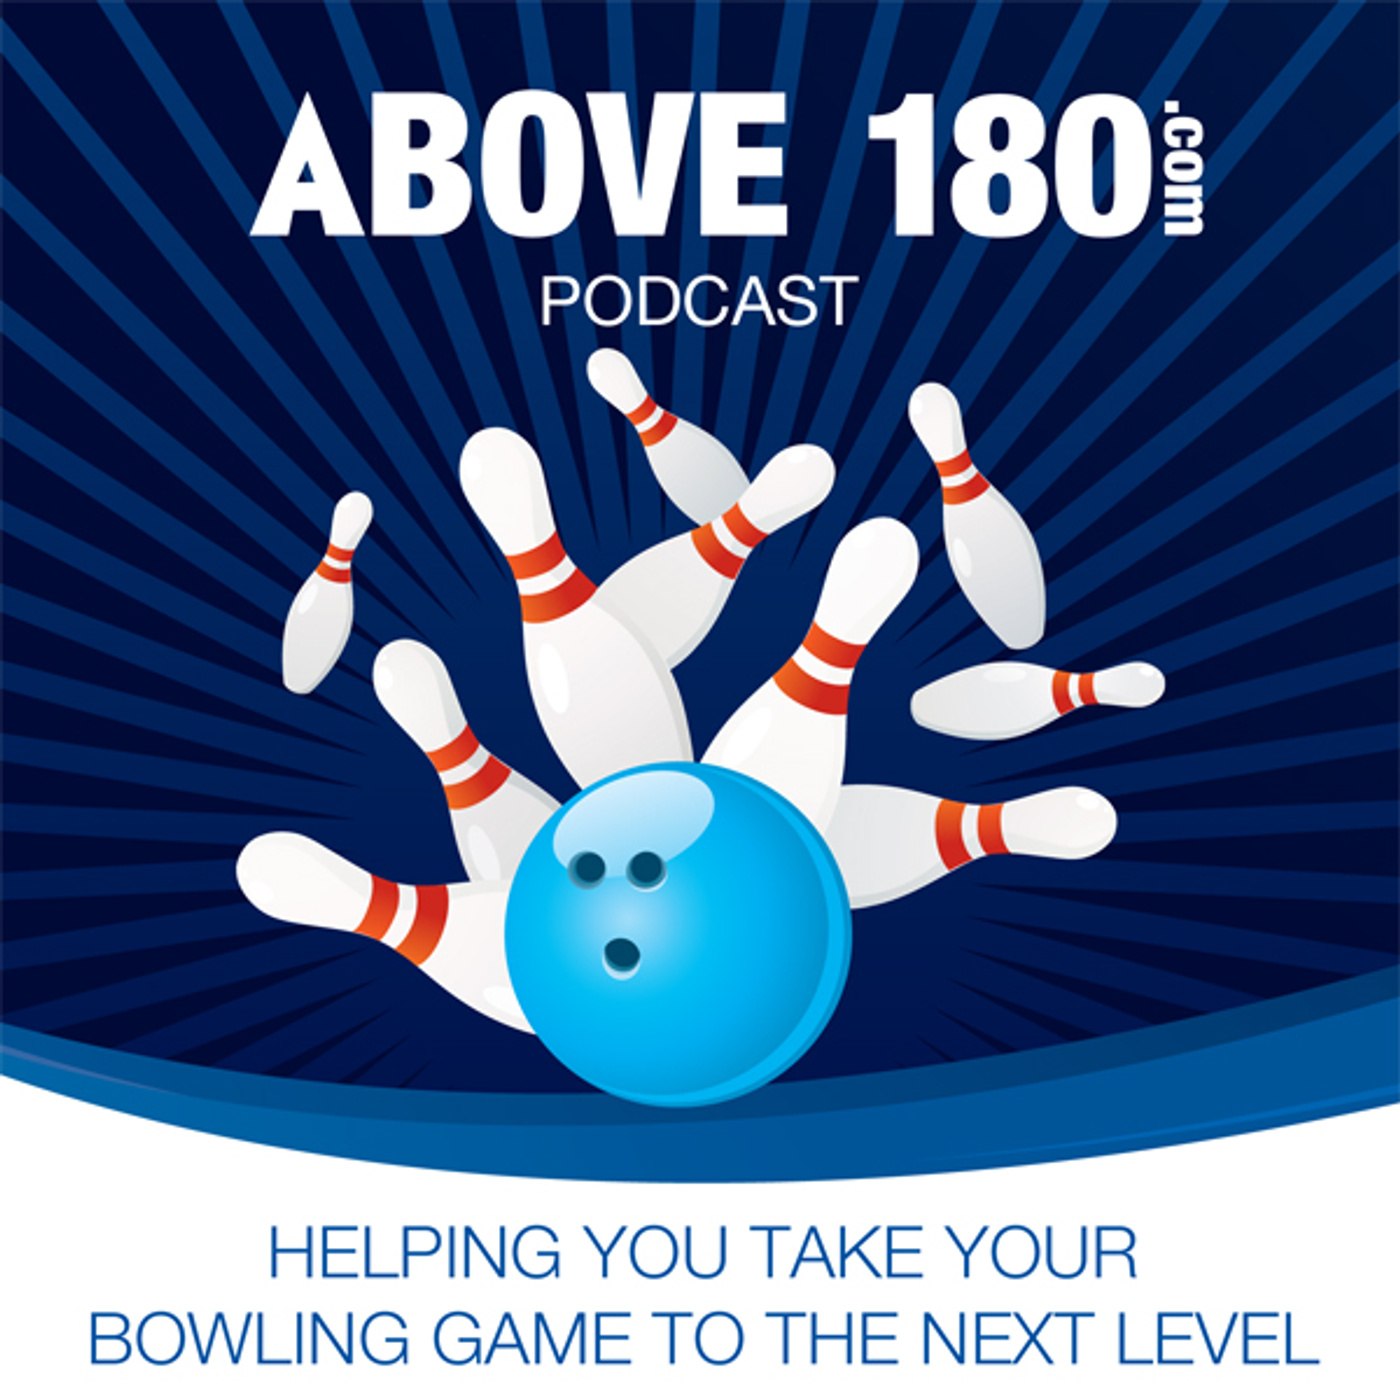 Above 180.com Bowling Podcast